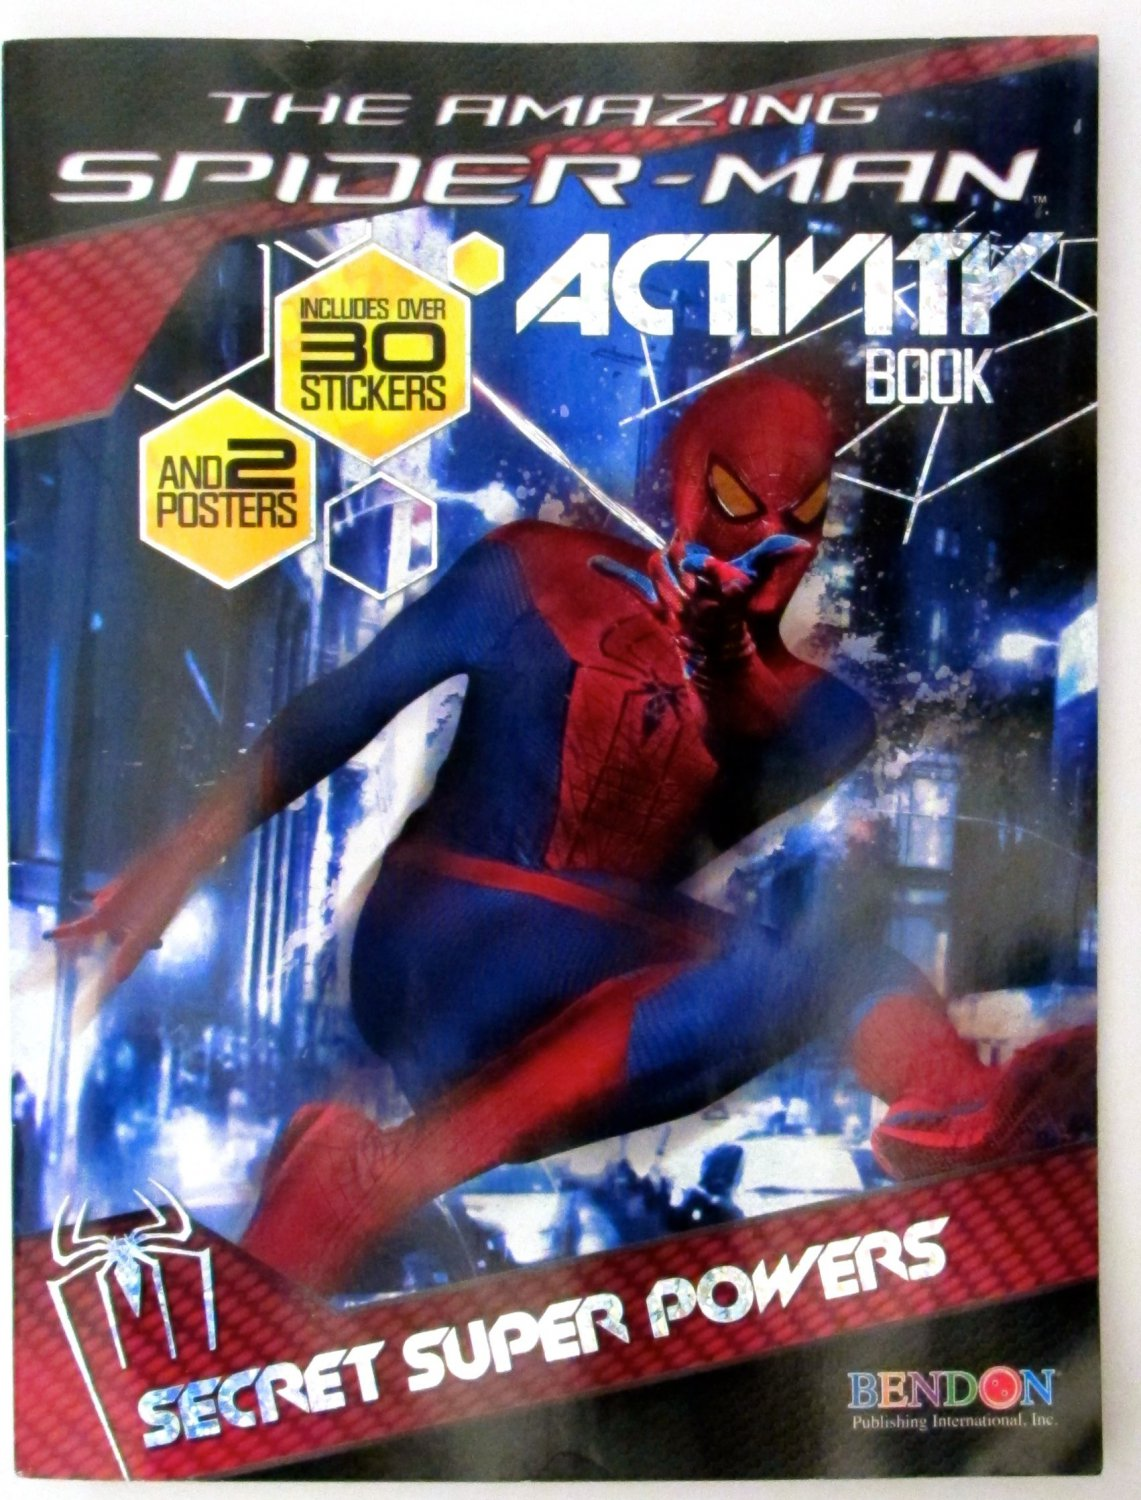 The Amazing Spider-man Activity Book: Secret Super Powers